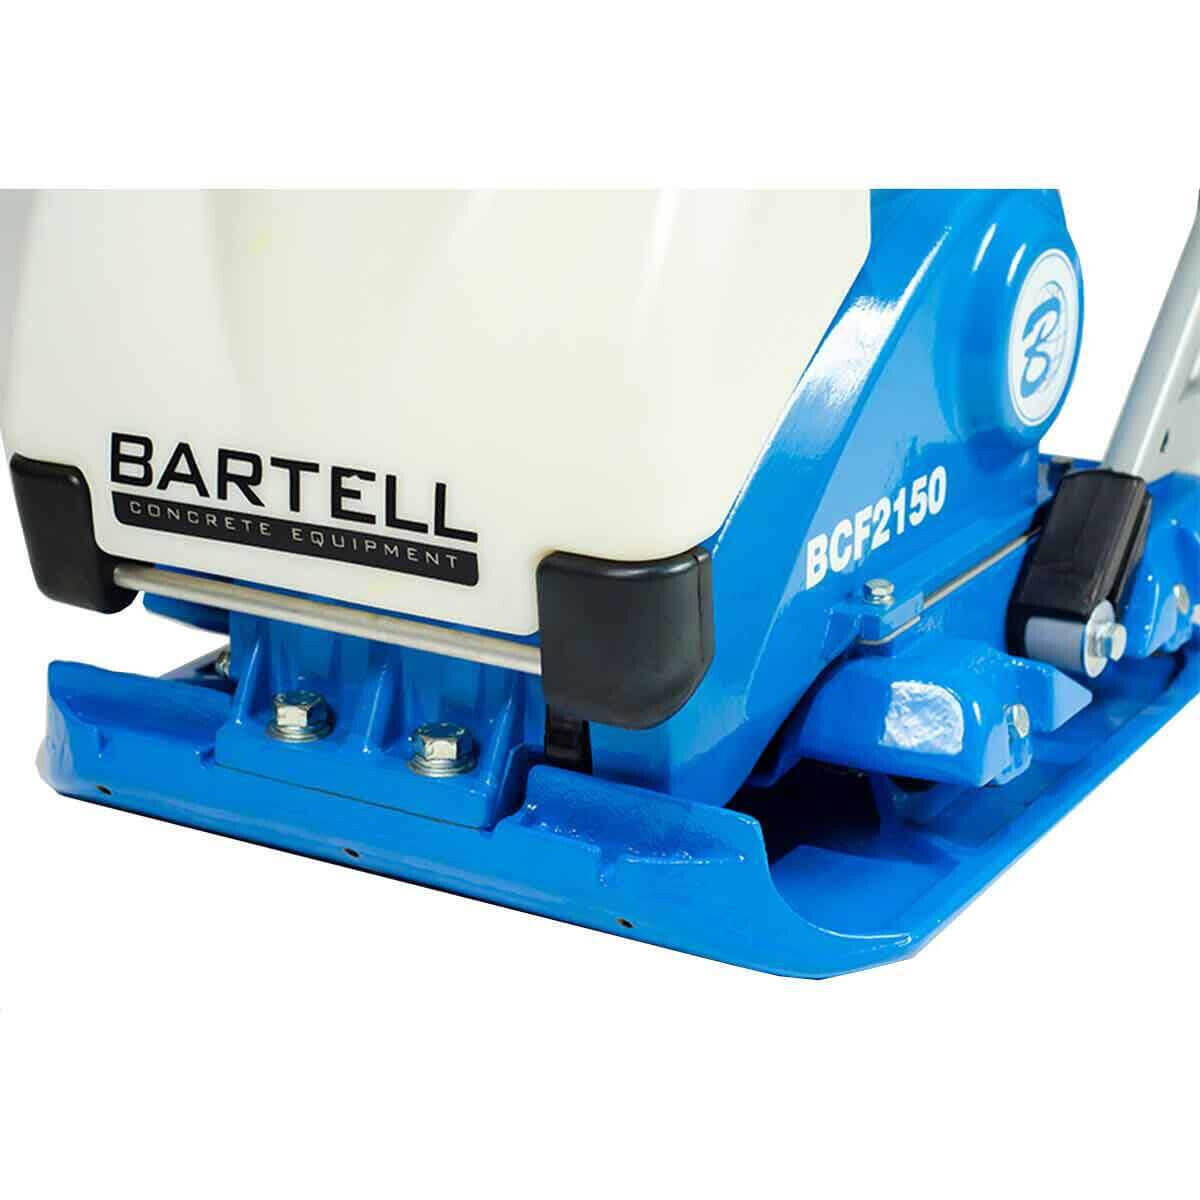 Bartell Plate Compactor Tank